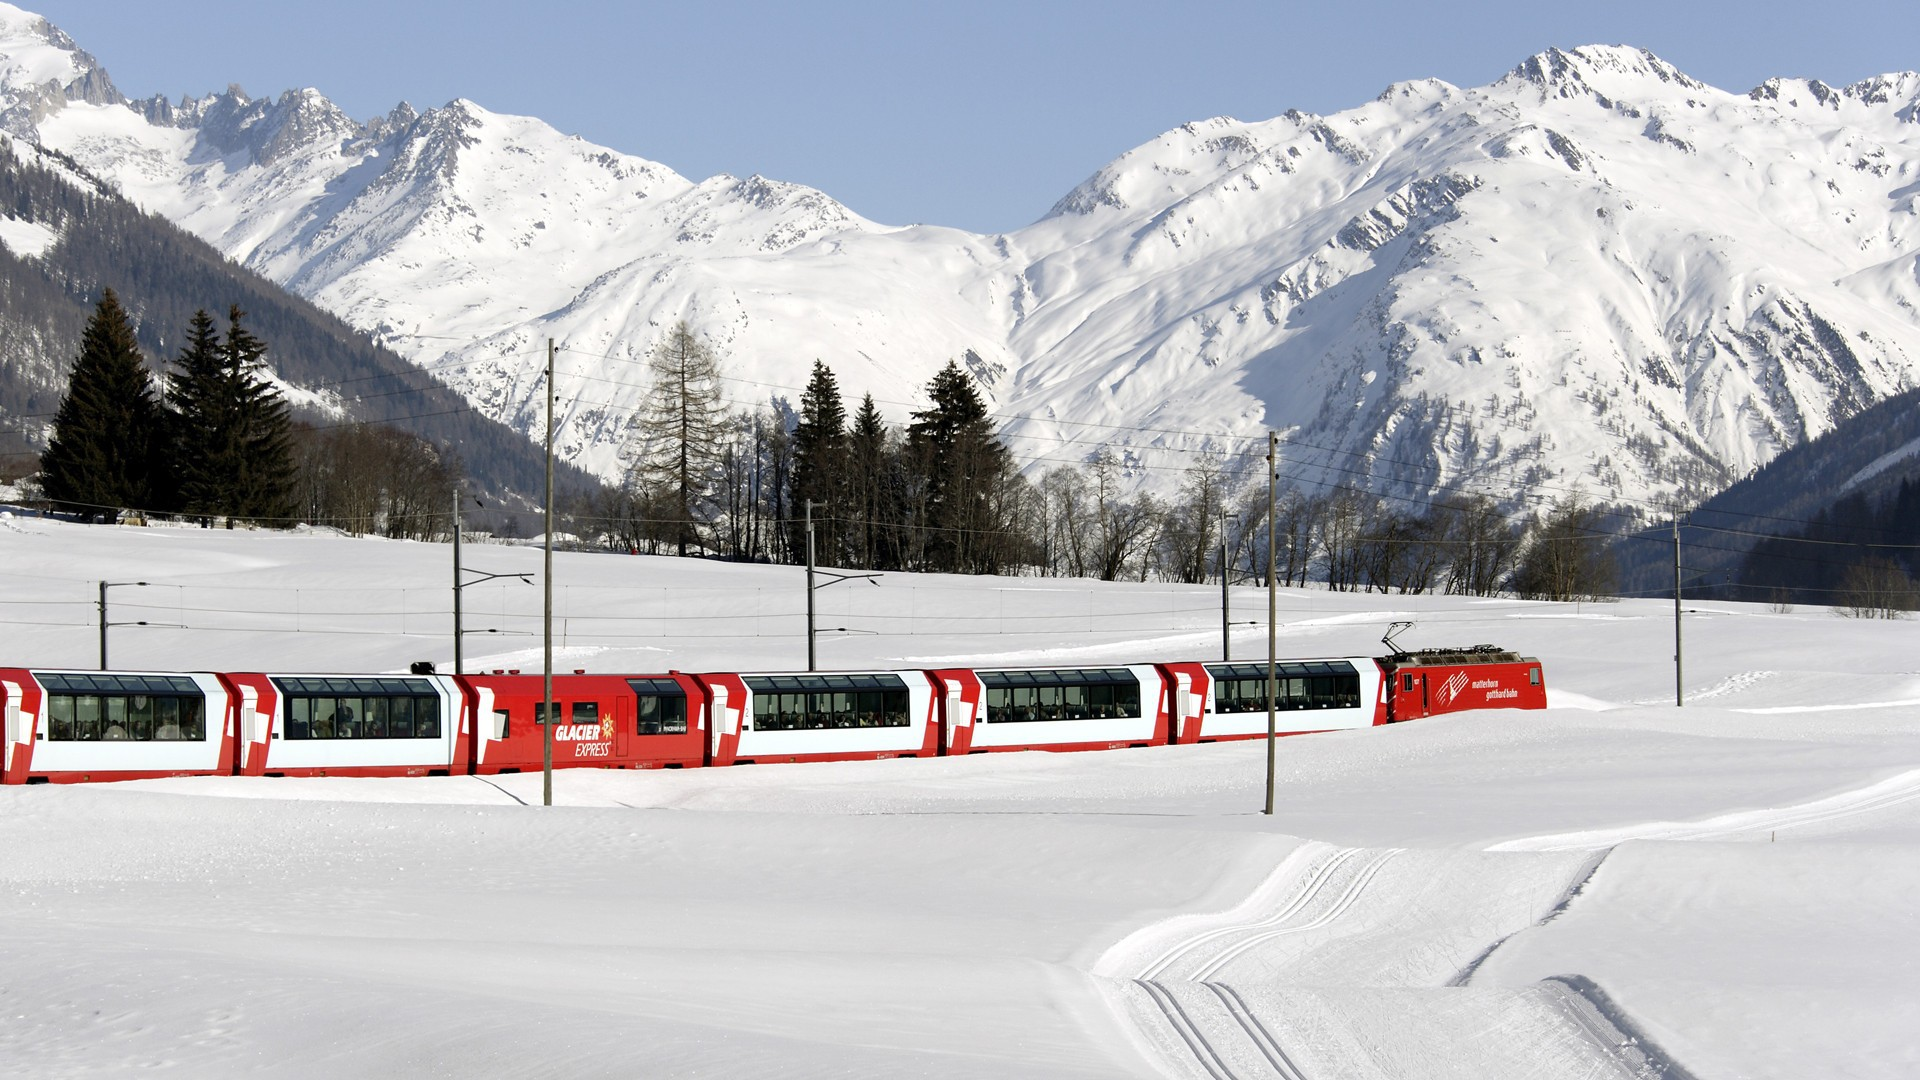 Passenger train in the snow in Switzerland wallpapers and images 1920x1080